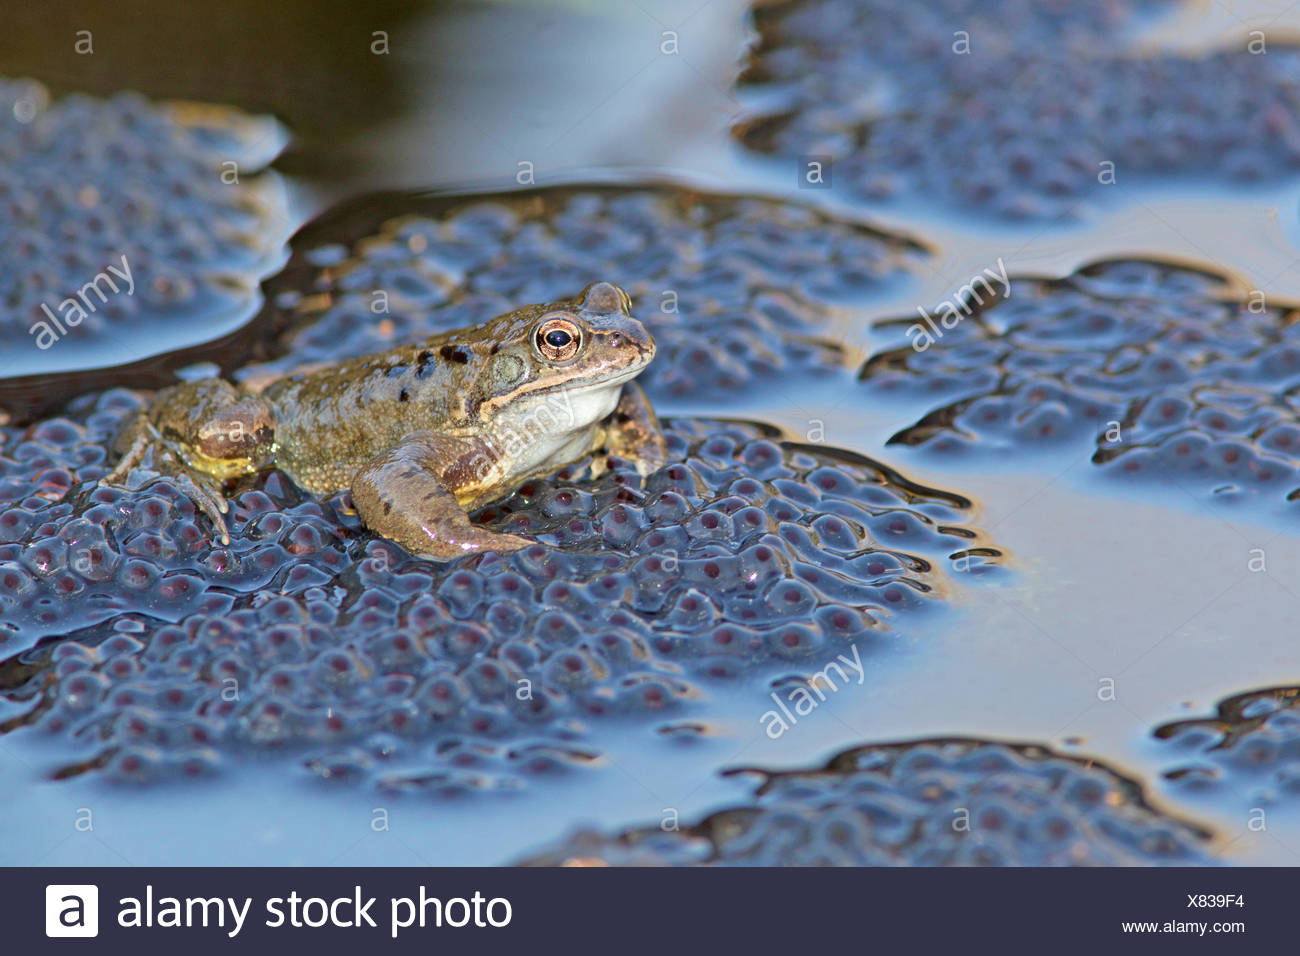 common frog male on top of frog spawn during mating Stock Photo